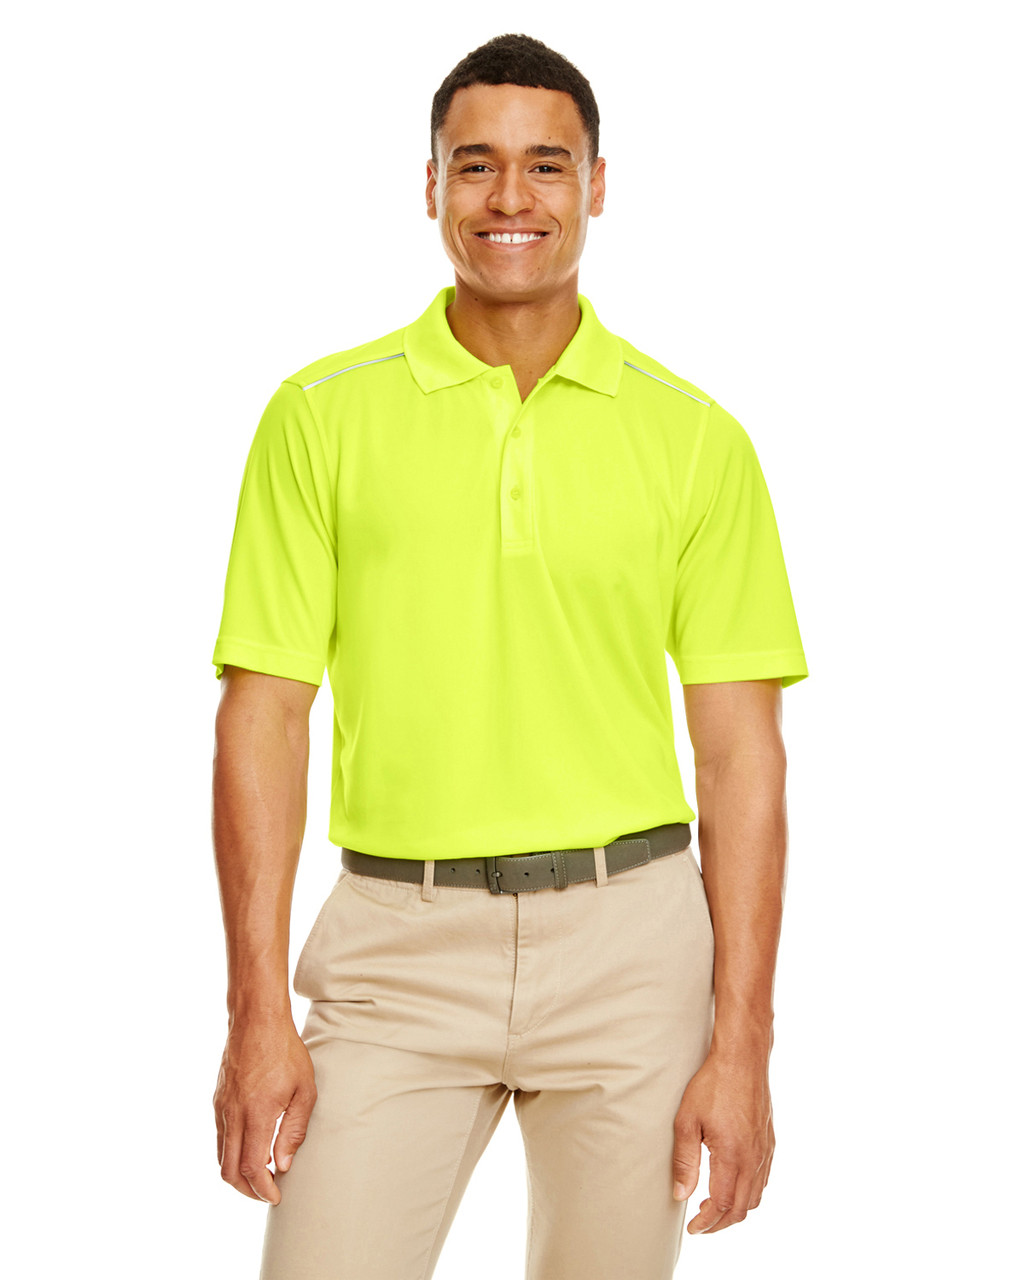 Safety Yellow - 88181R Ash City - Core 365 Men's Radiant Performance Piqué Polo Shirt with Reflective Piping | Blankclothing.ca